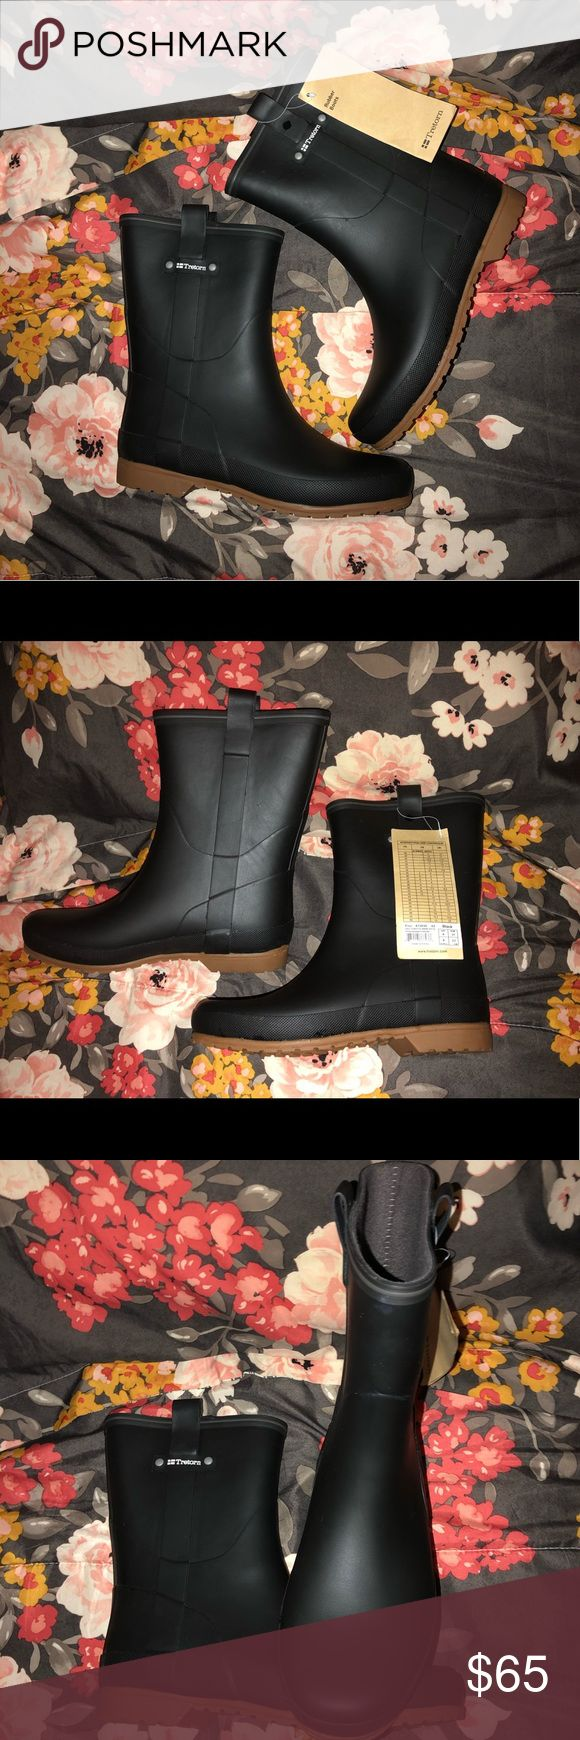 Tretorn rain boots NWT Brand new. Never worn!  Woman's size 7 Tretorn Shoes Wi…